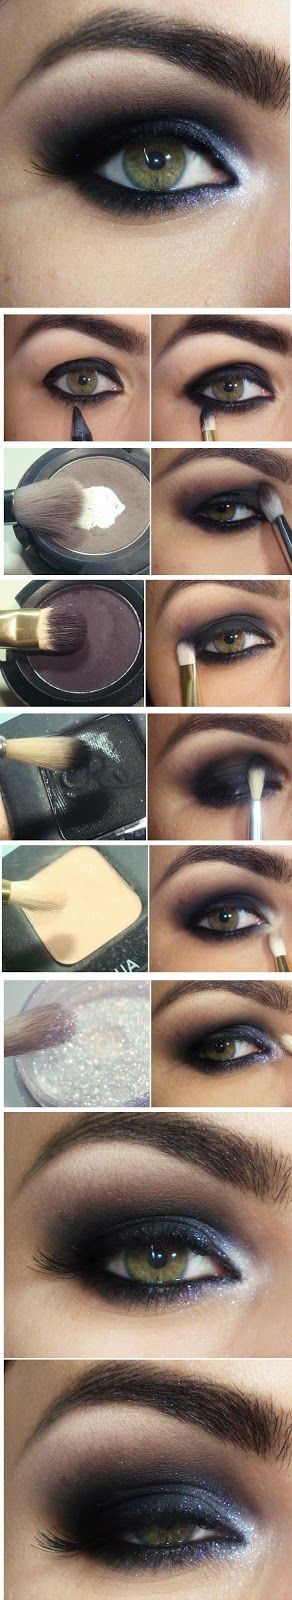 How to : Black Eye with Glow Inspired Makeup Tutorials / Best LoLus Makeup Fashion